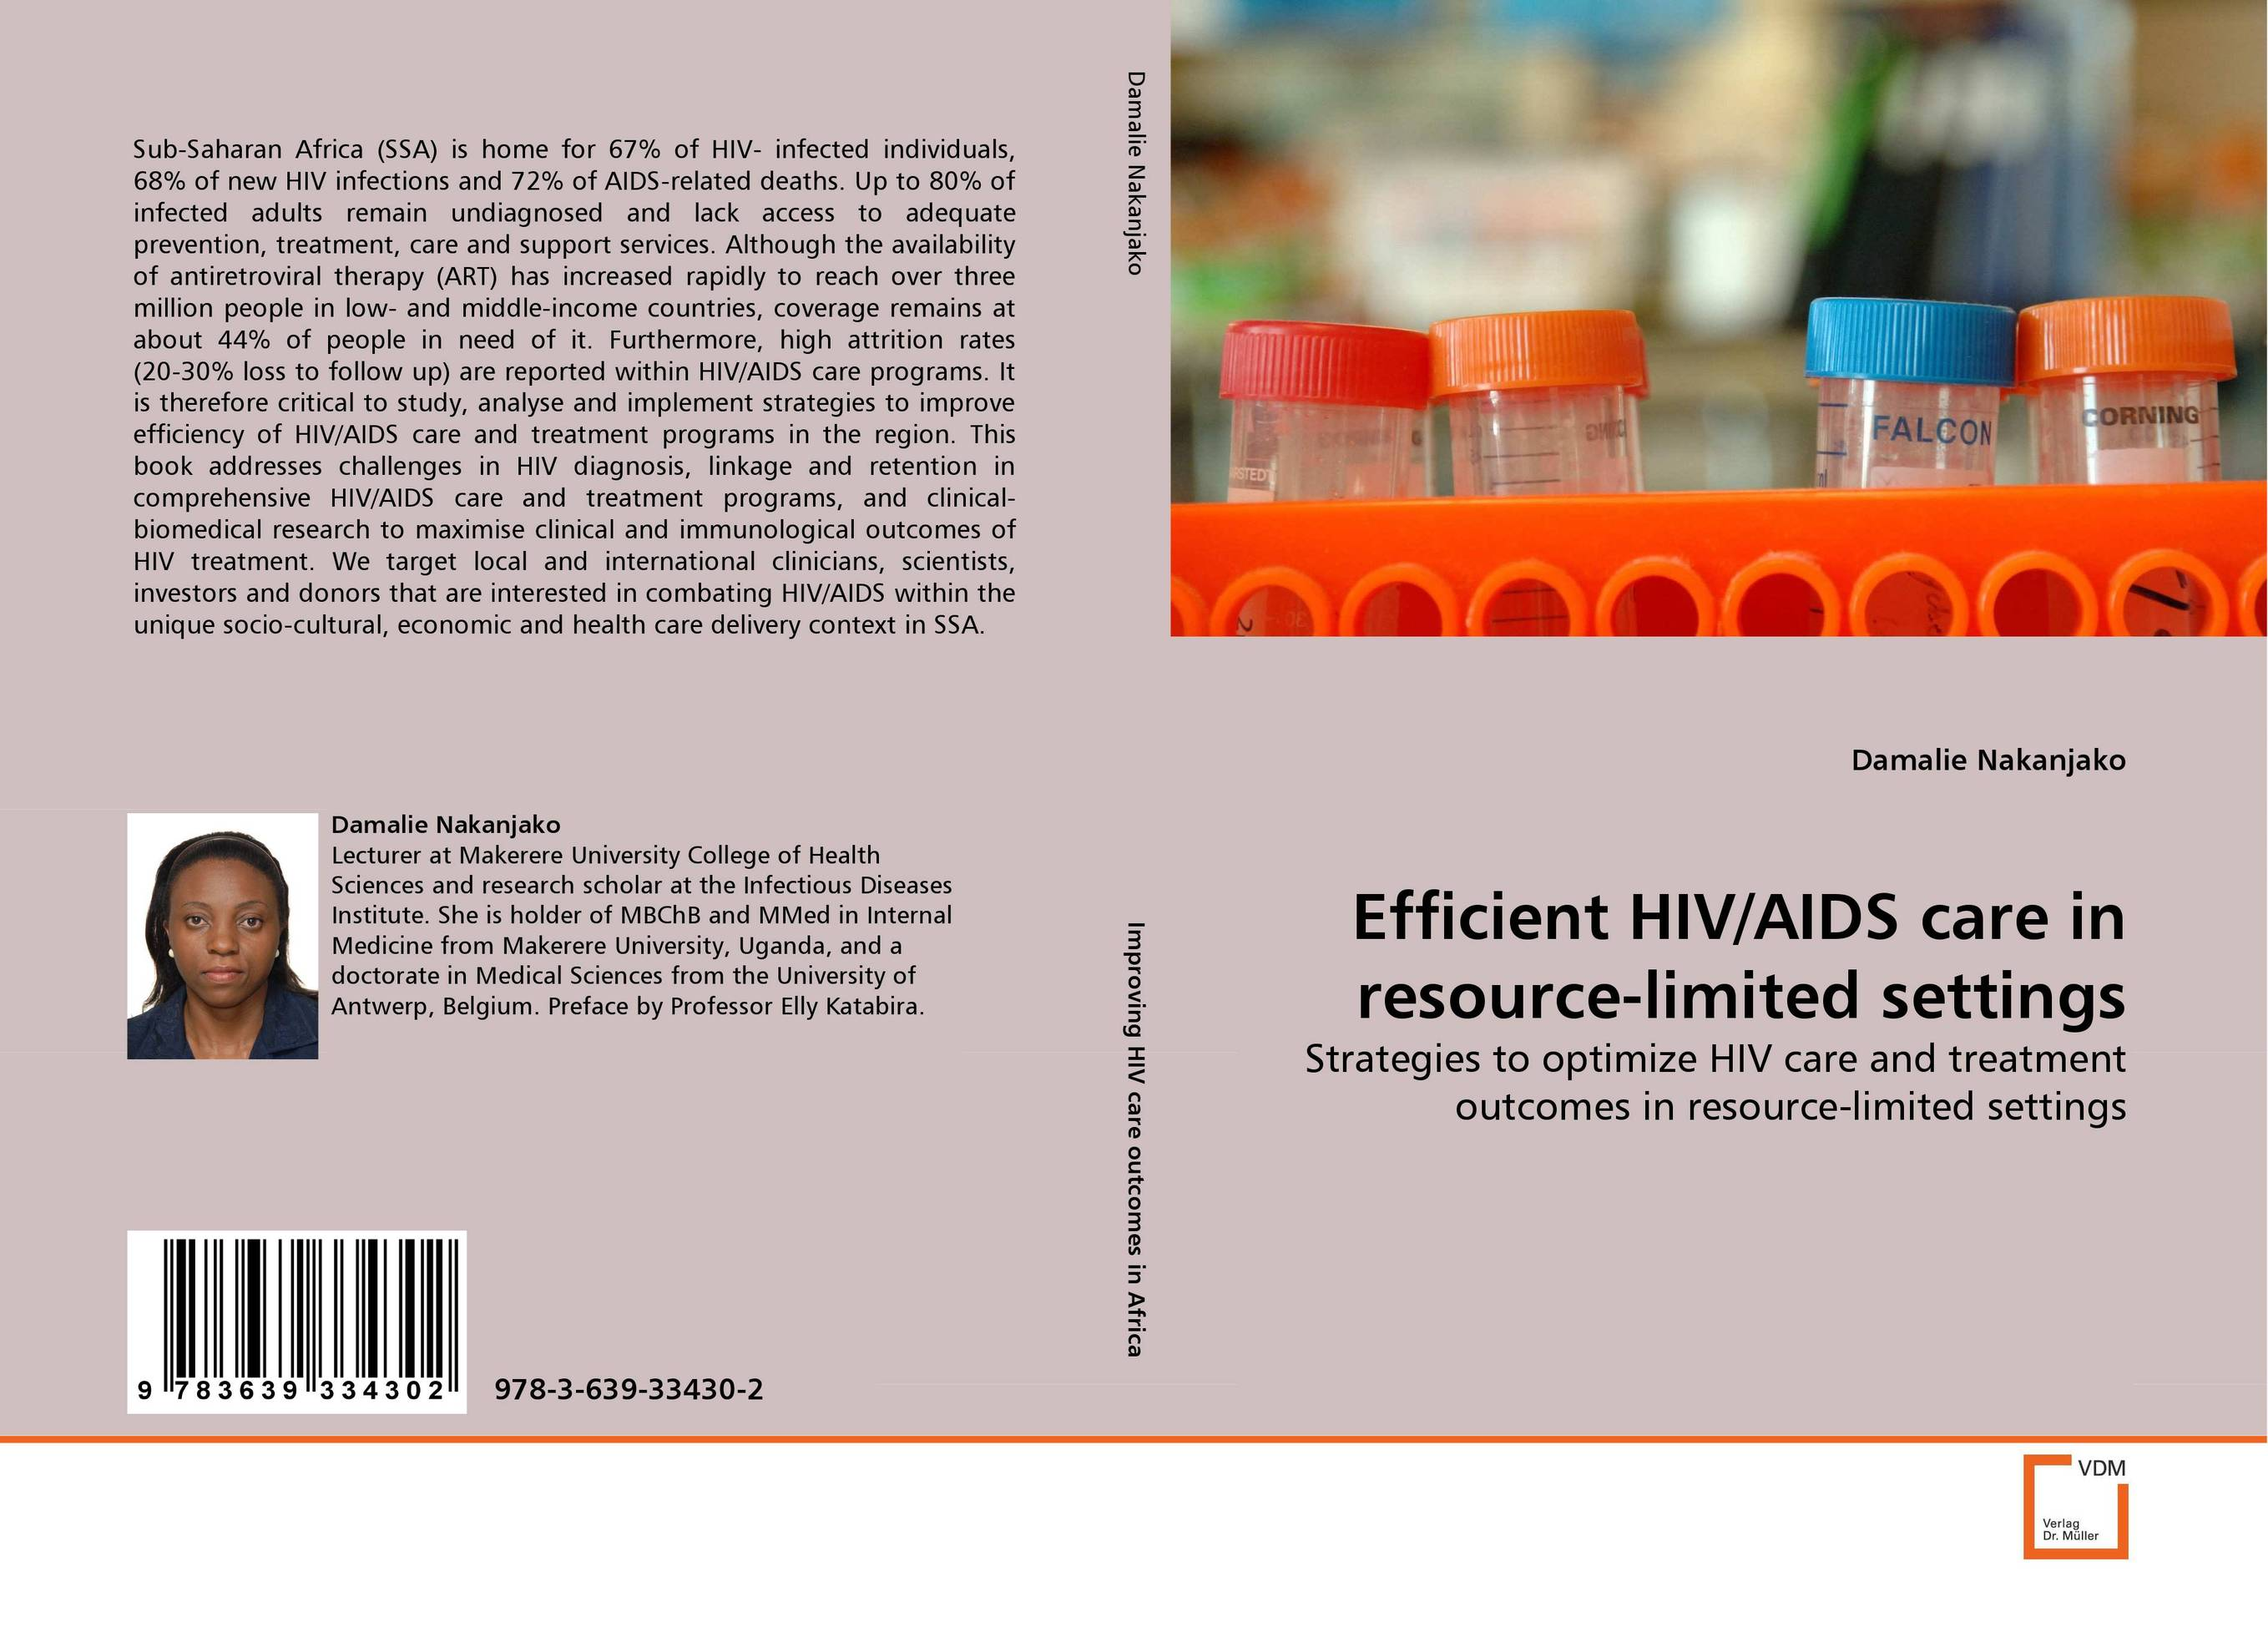 Efficient HIV/AIDS care in resource-limited settings hiv and aids